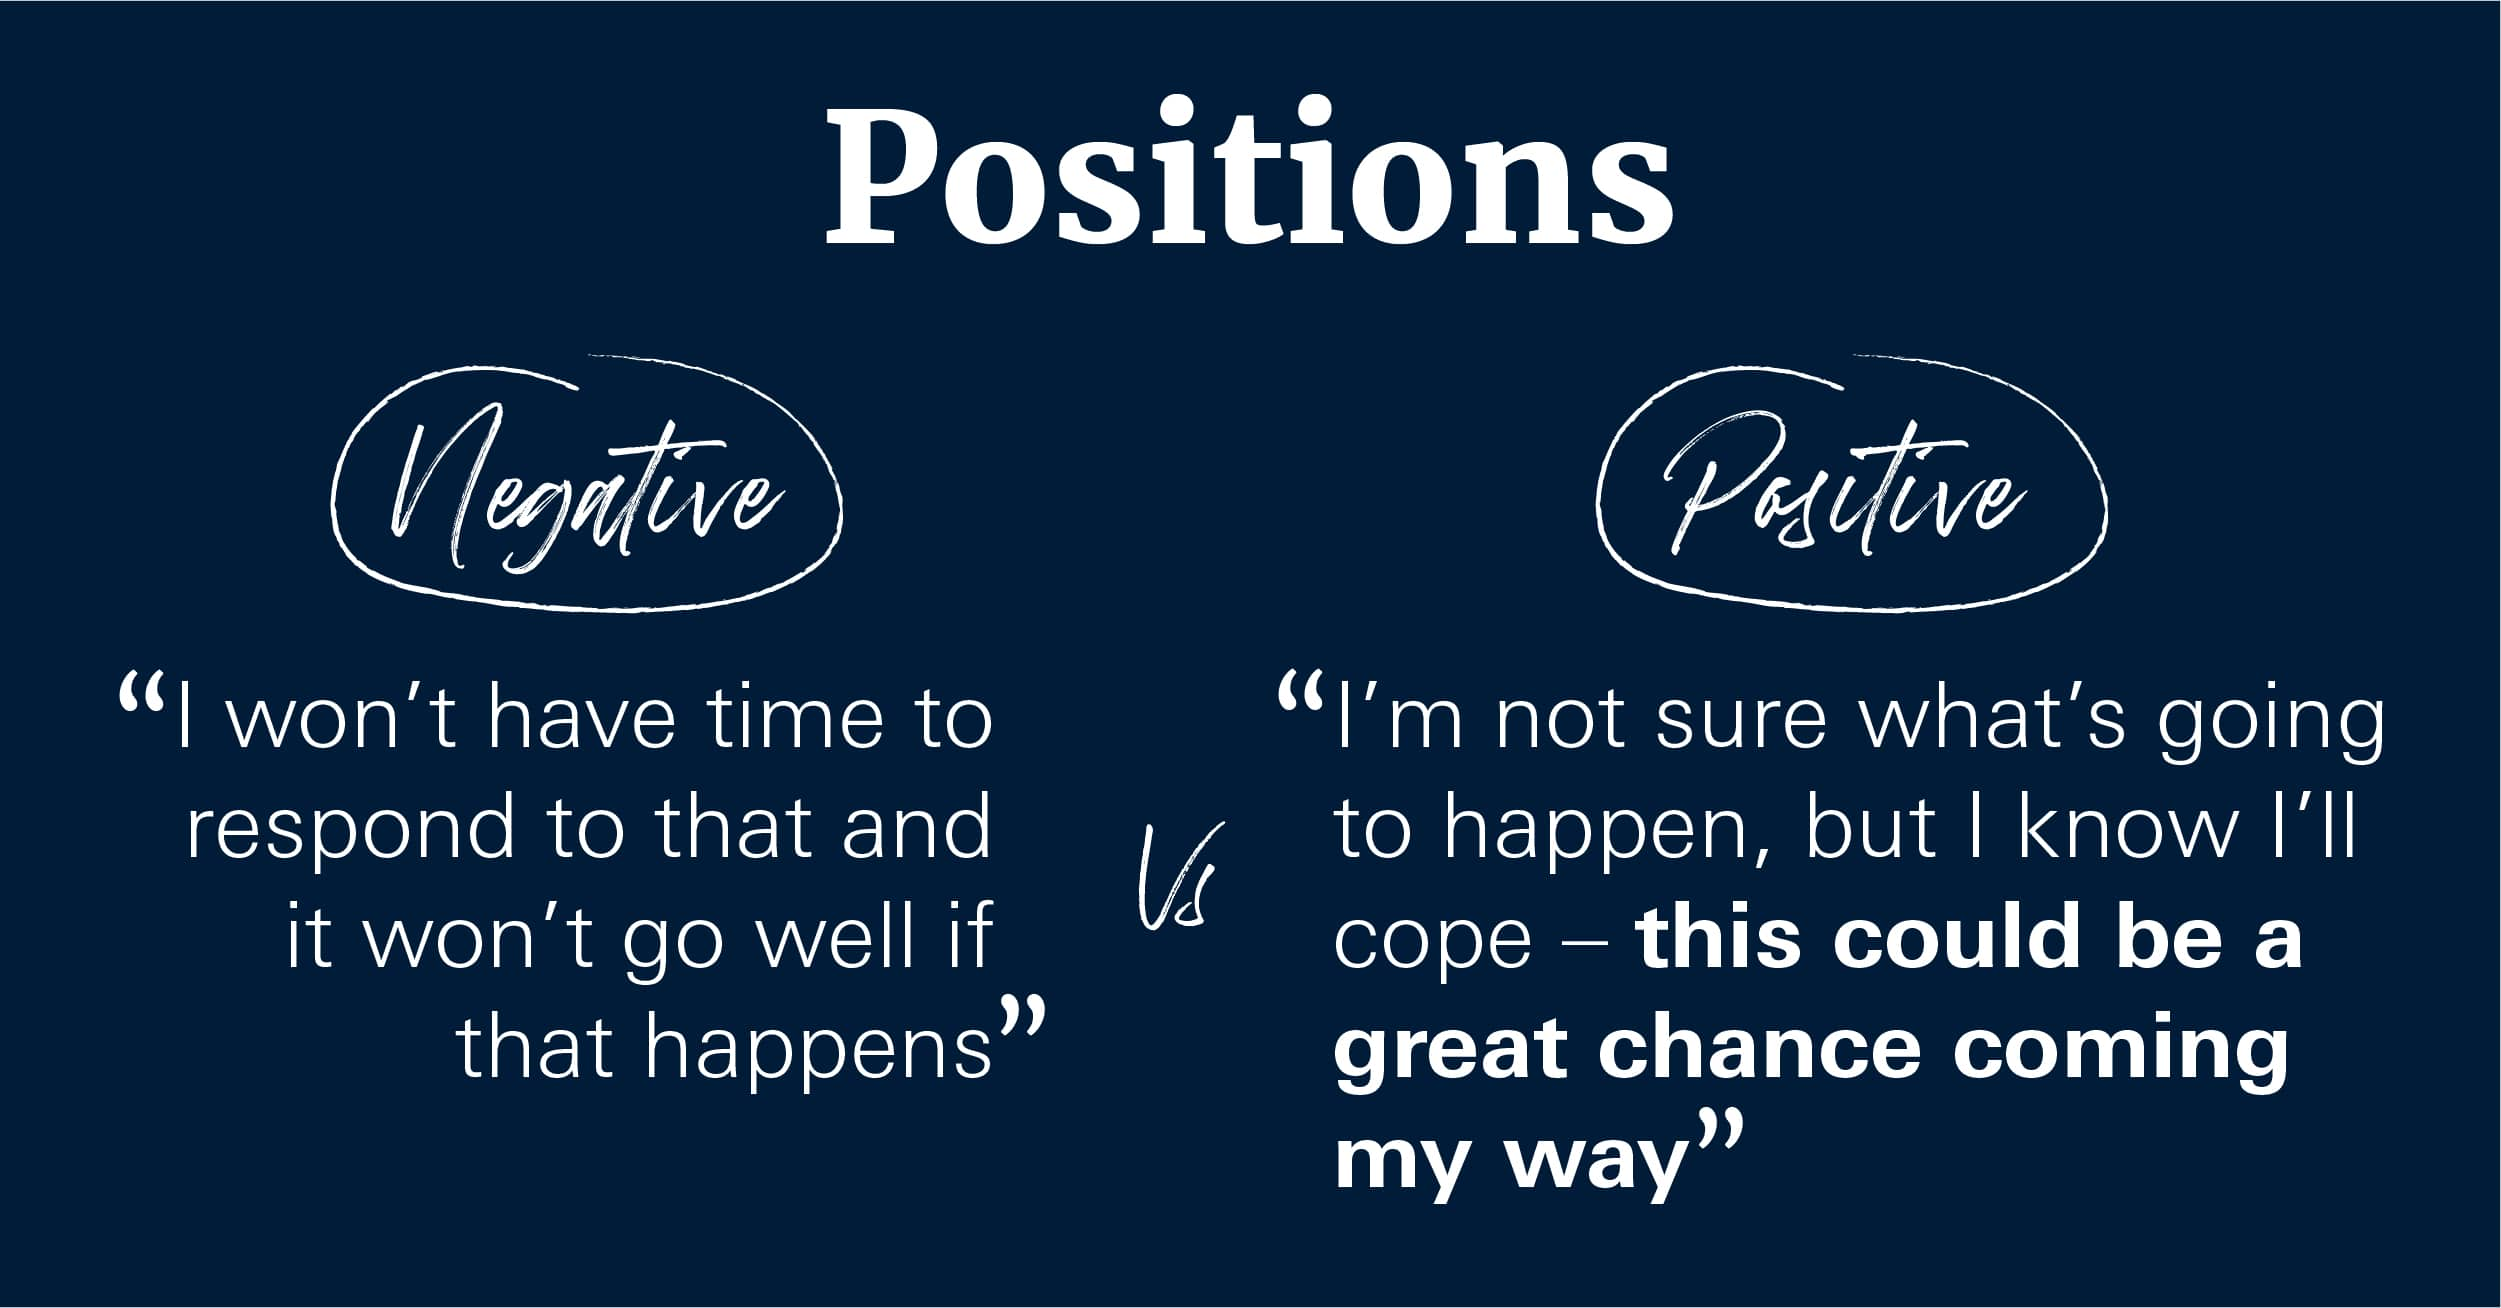 Negative and positive positions